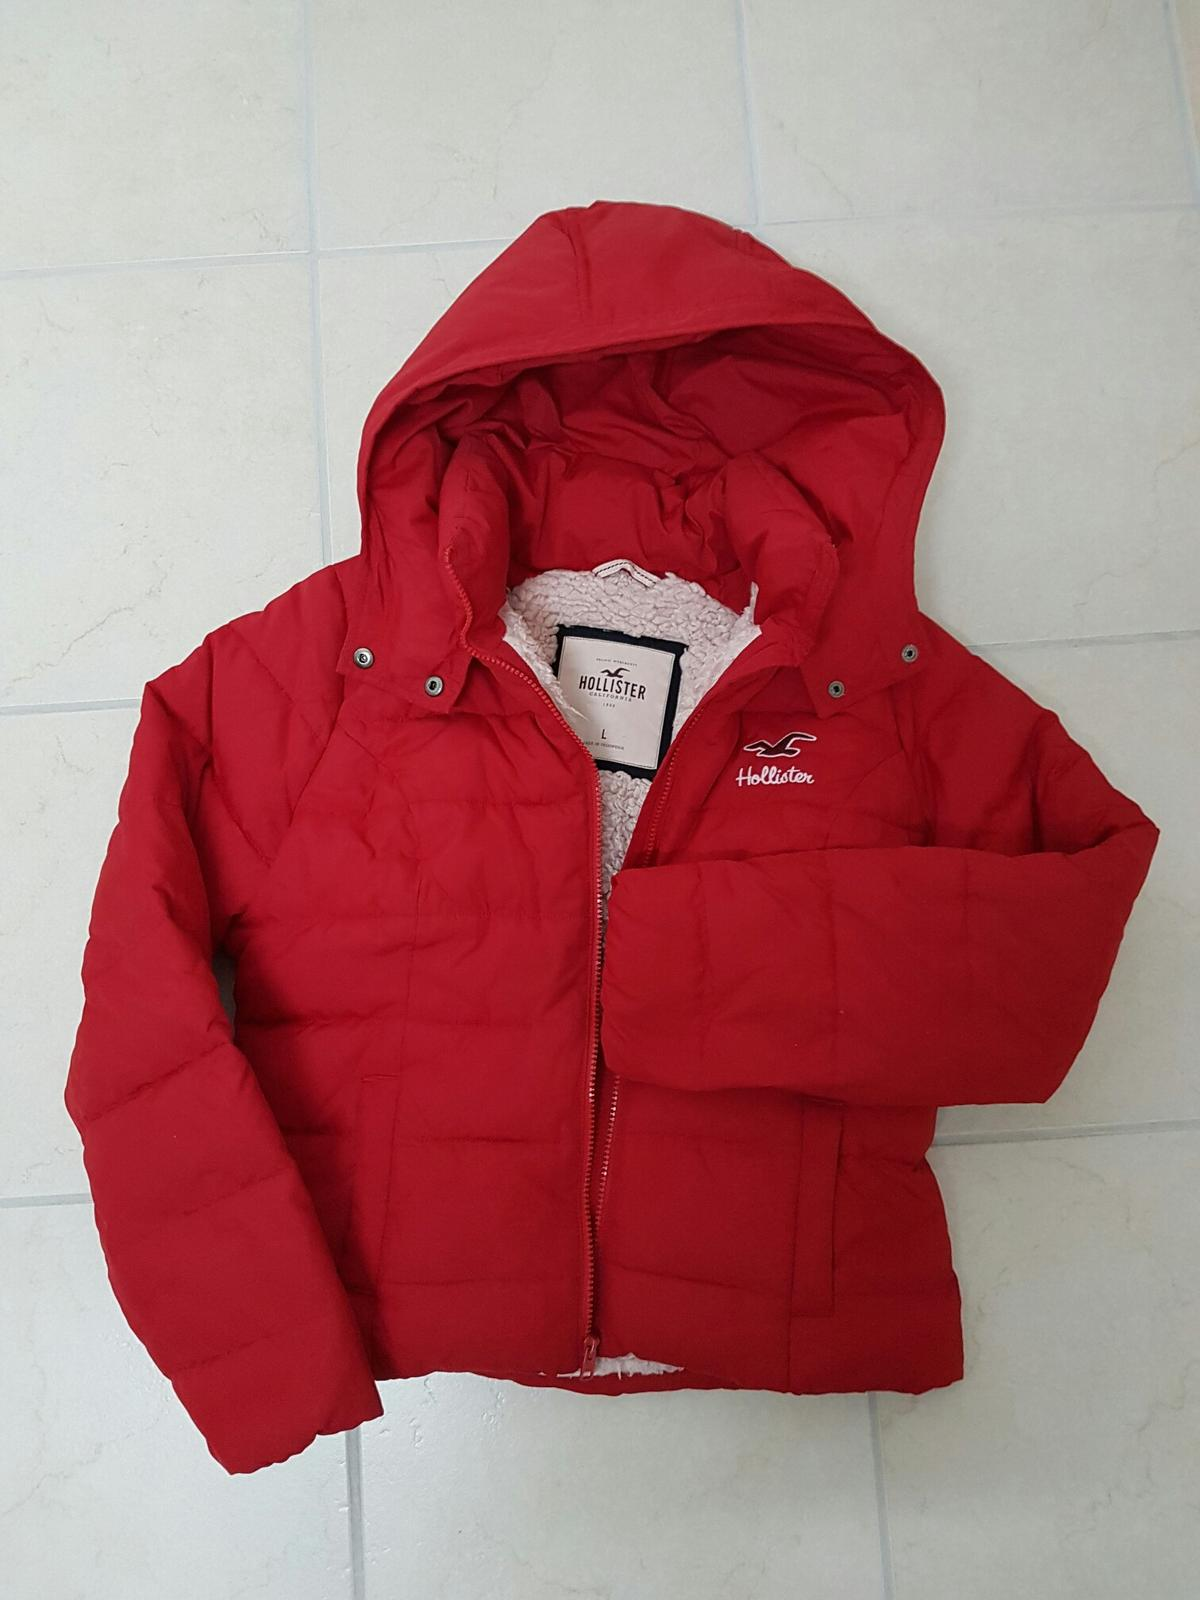 Hollister winterjacke rot winter jacke in 22848 Norderstedt